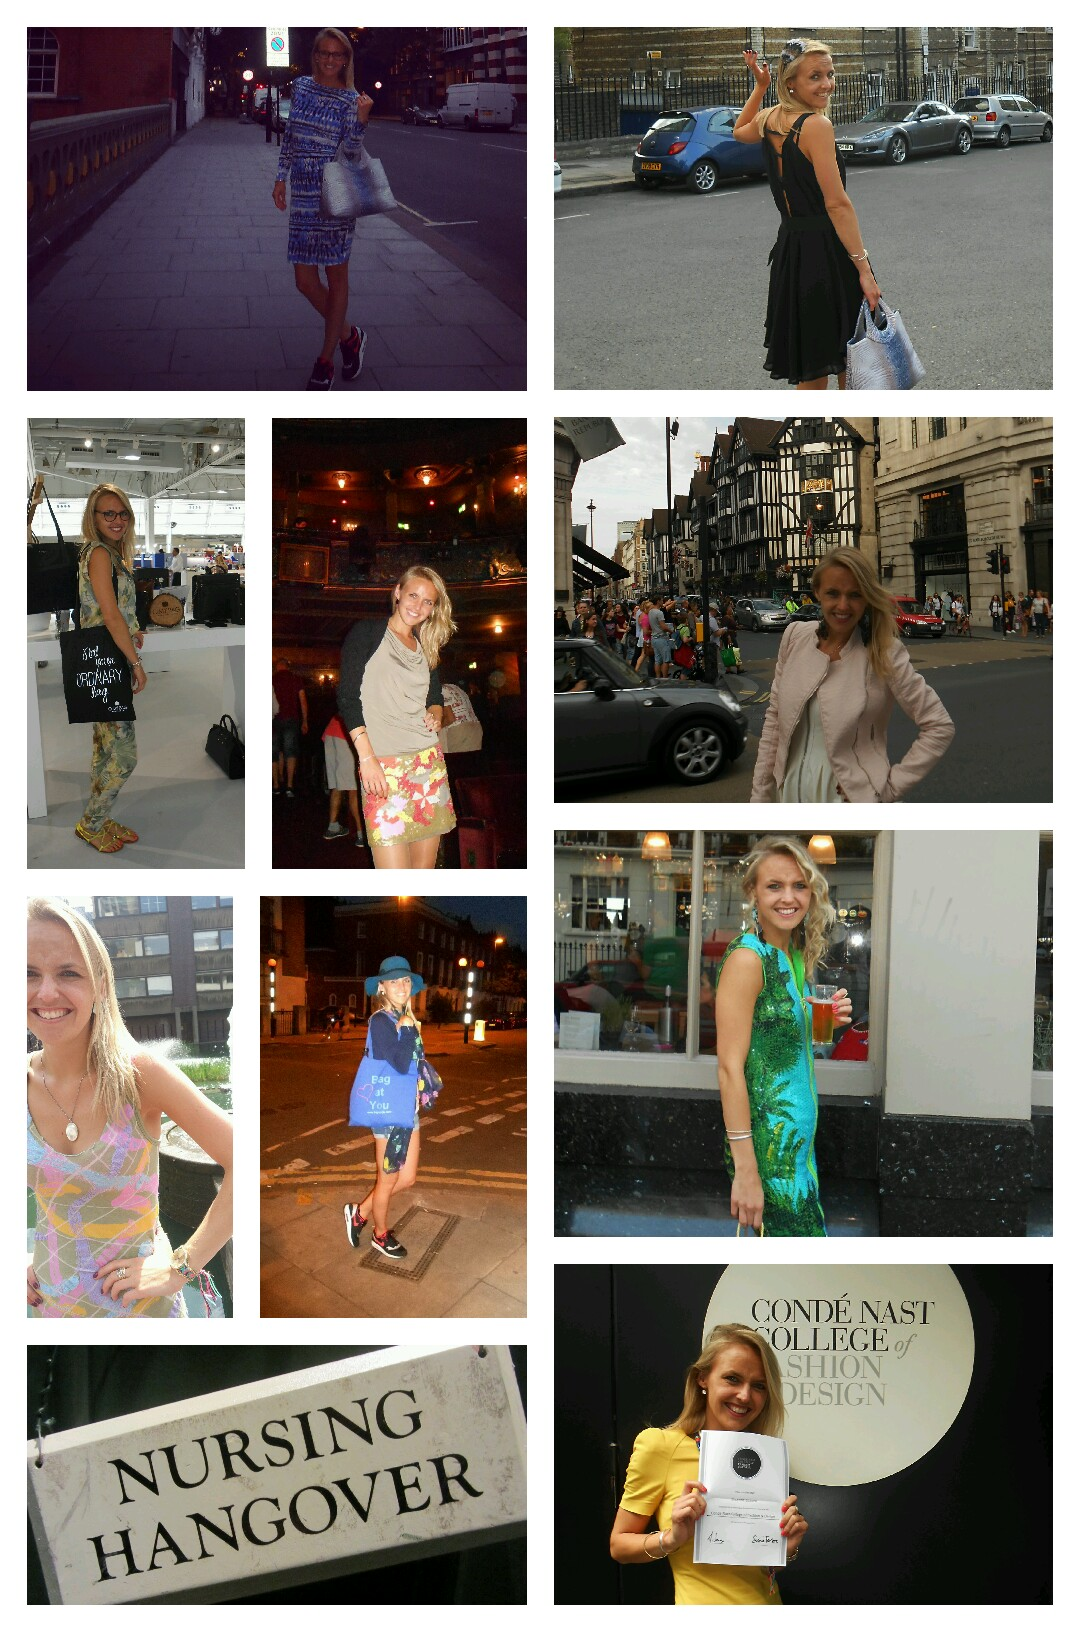 Collage 2014-08-13 10_41_33